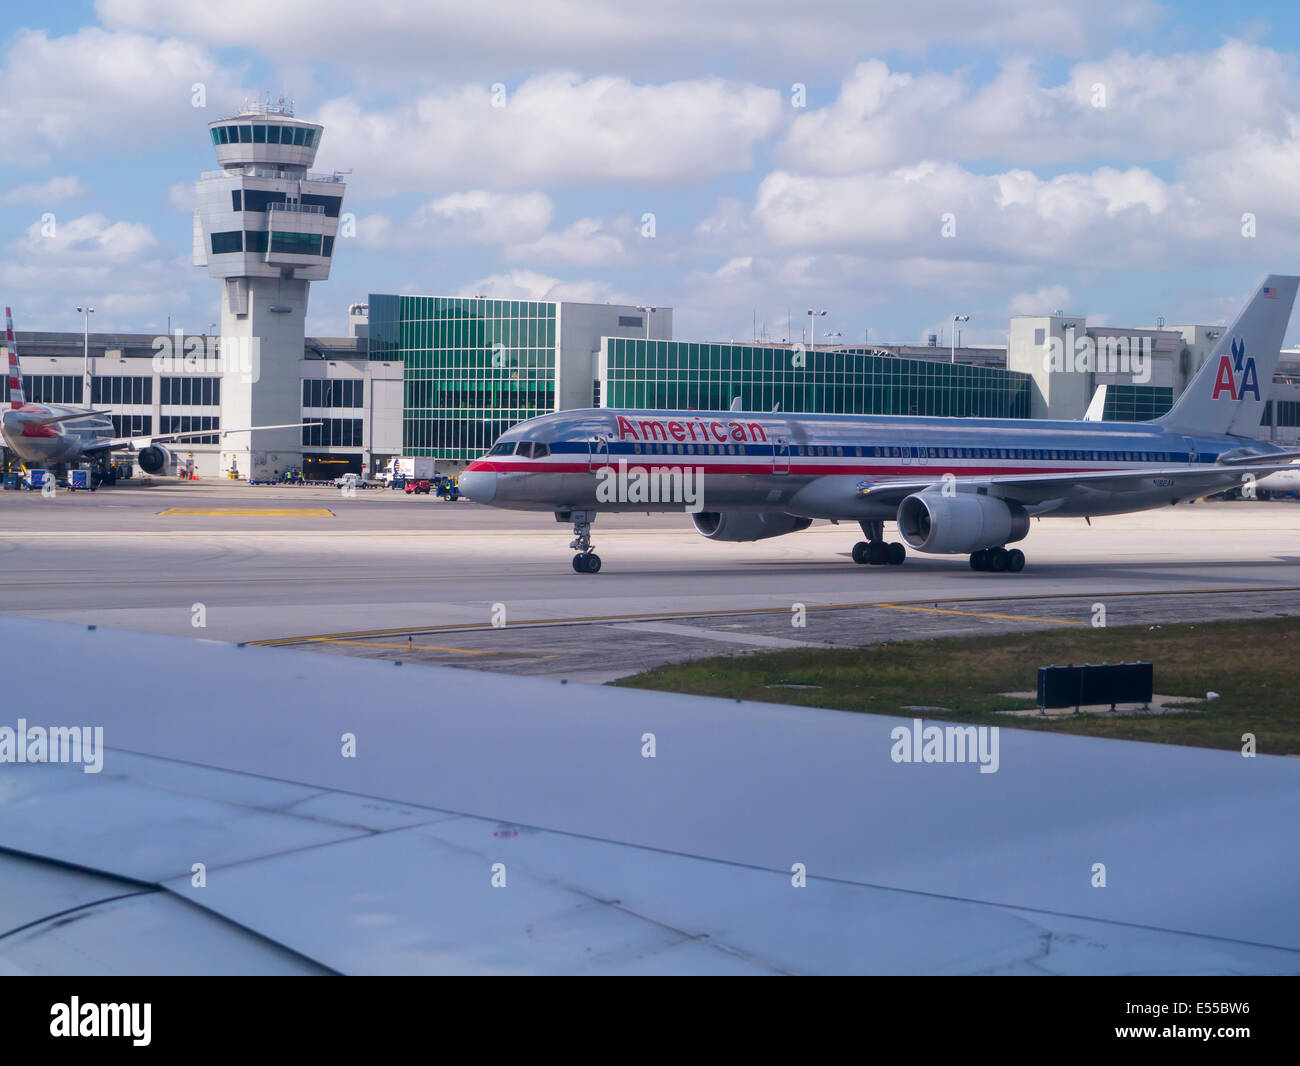 Commercial passenger plane taxiing at airport - Stock Image